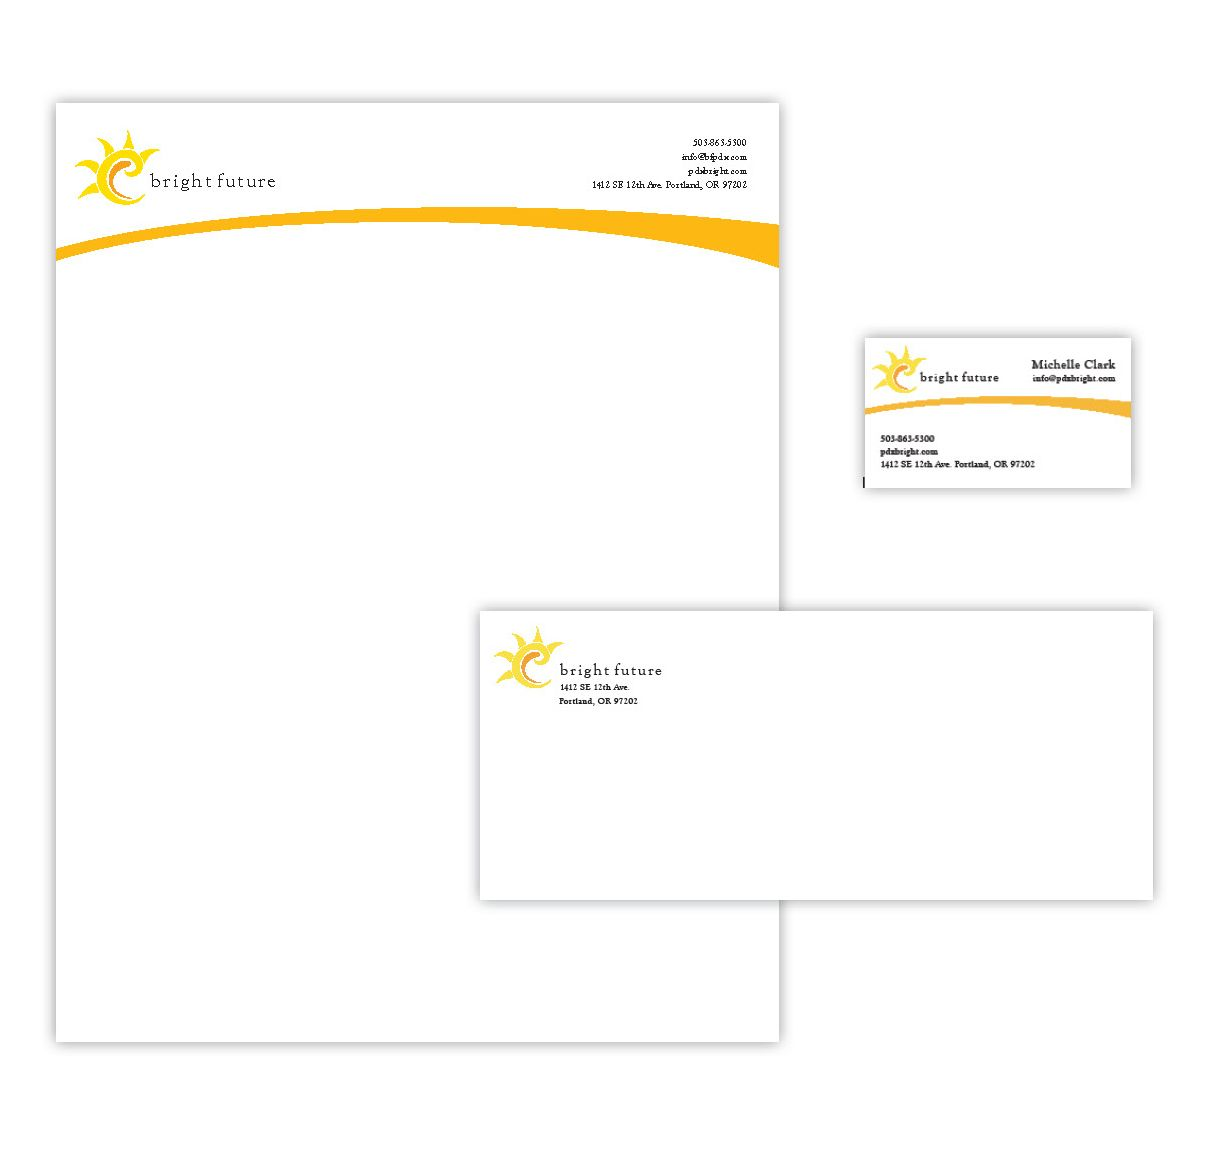 Letterhead Design Ideas letterhead design Top 25 Ideas About Letterhead Designs On Pinterestindigo Letterhead Design Ideas Letterhead Design Ideas